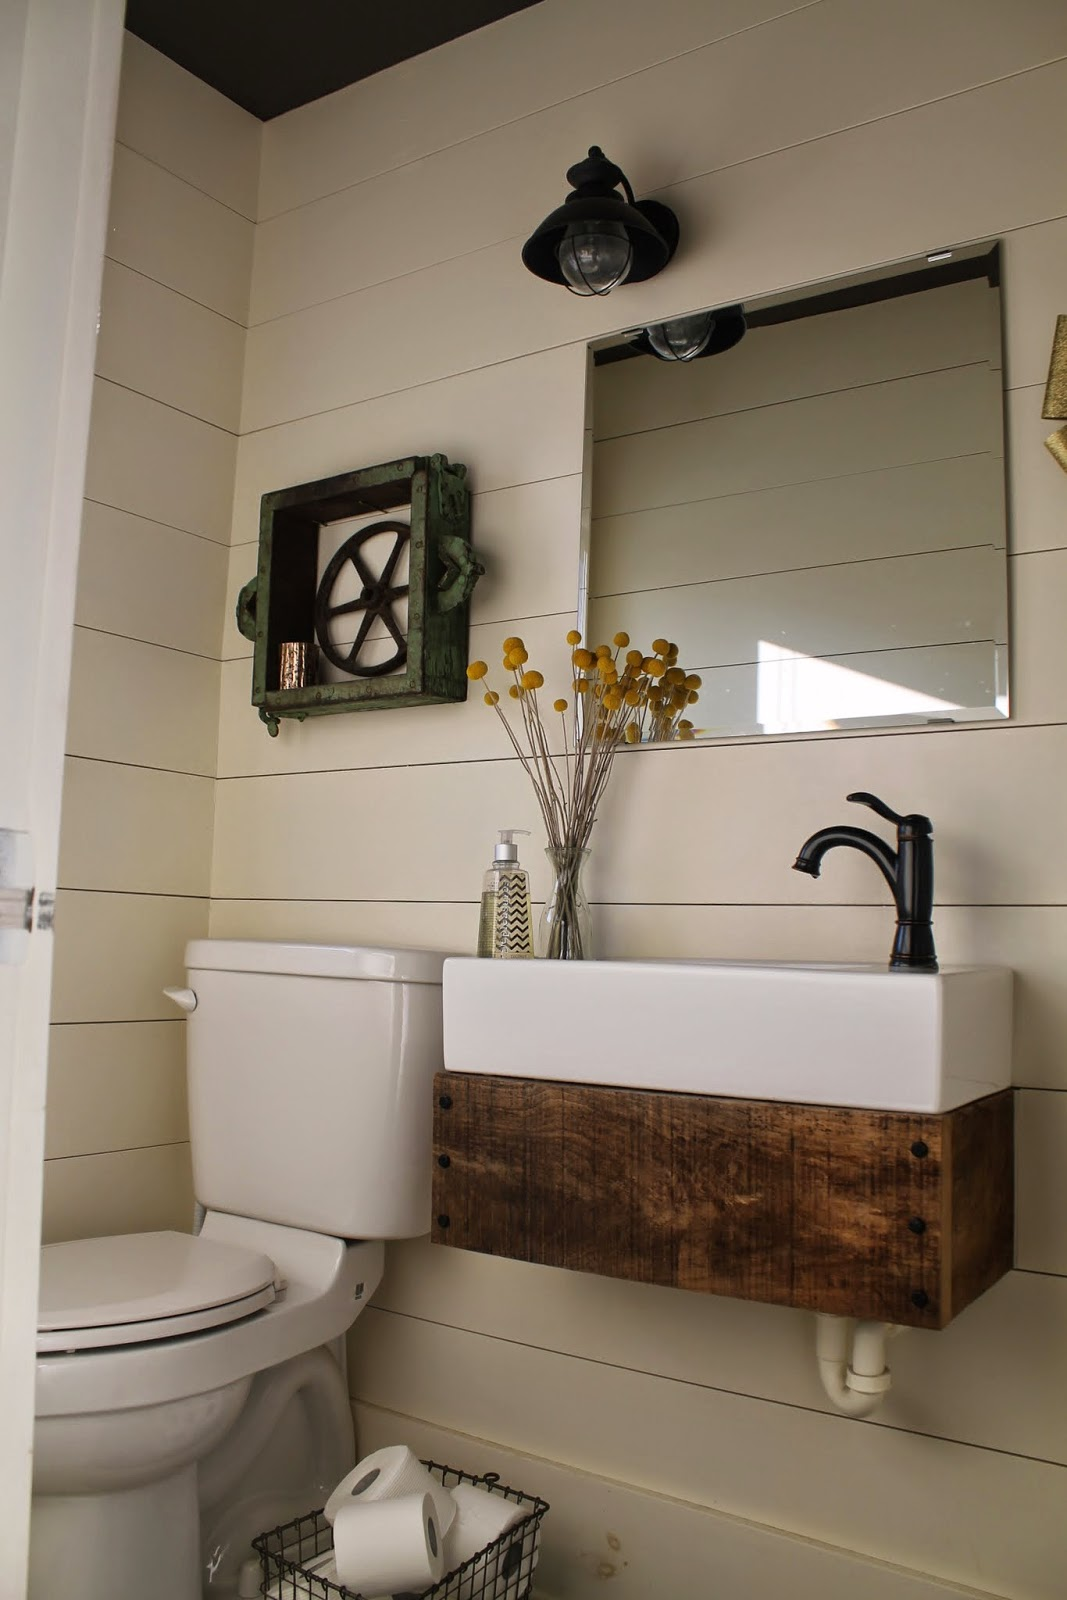 Stunning rustic reclaimed wood floating vanity in bathroom with planked walls Girl Meets Carpenter featured on